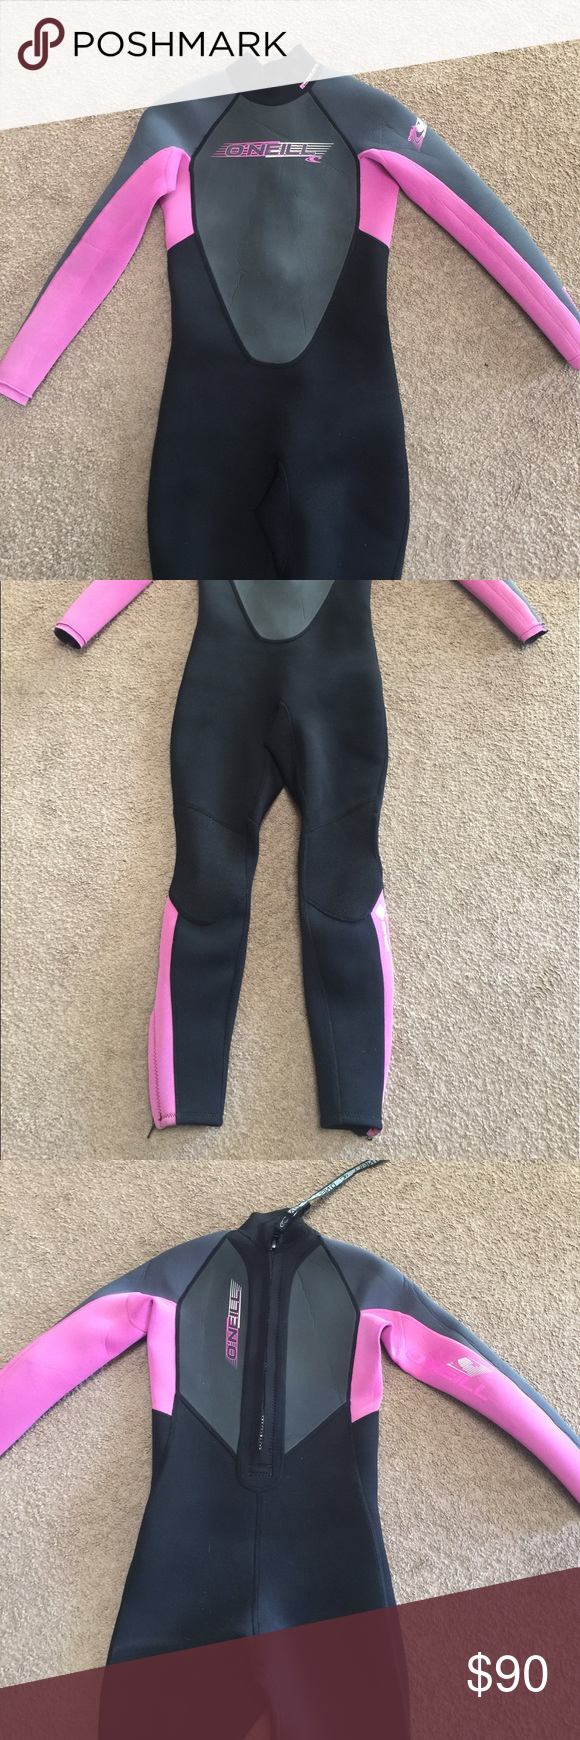 O Neil Wetsuit In Excellent Condition Wetsuit Spring Suit Oneill Swim